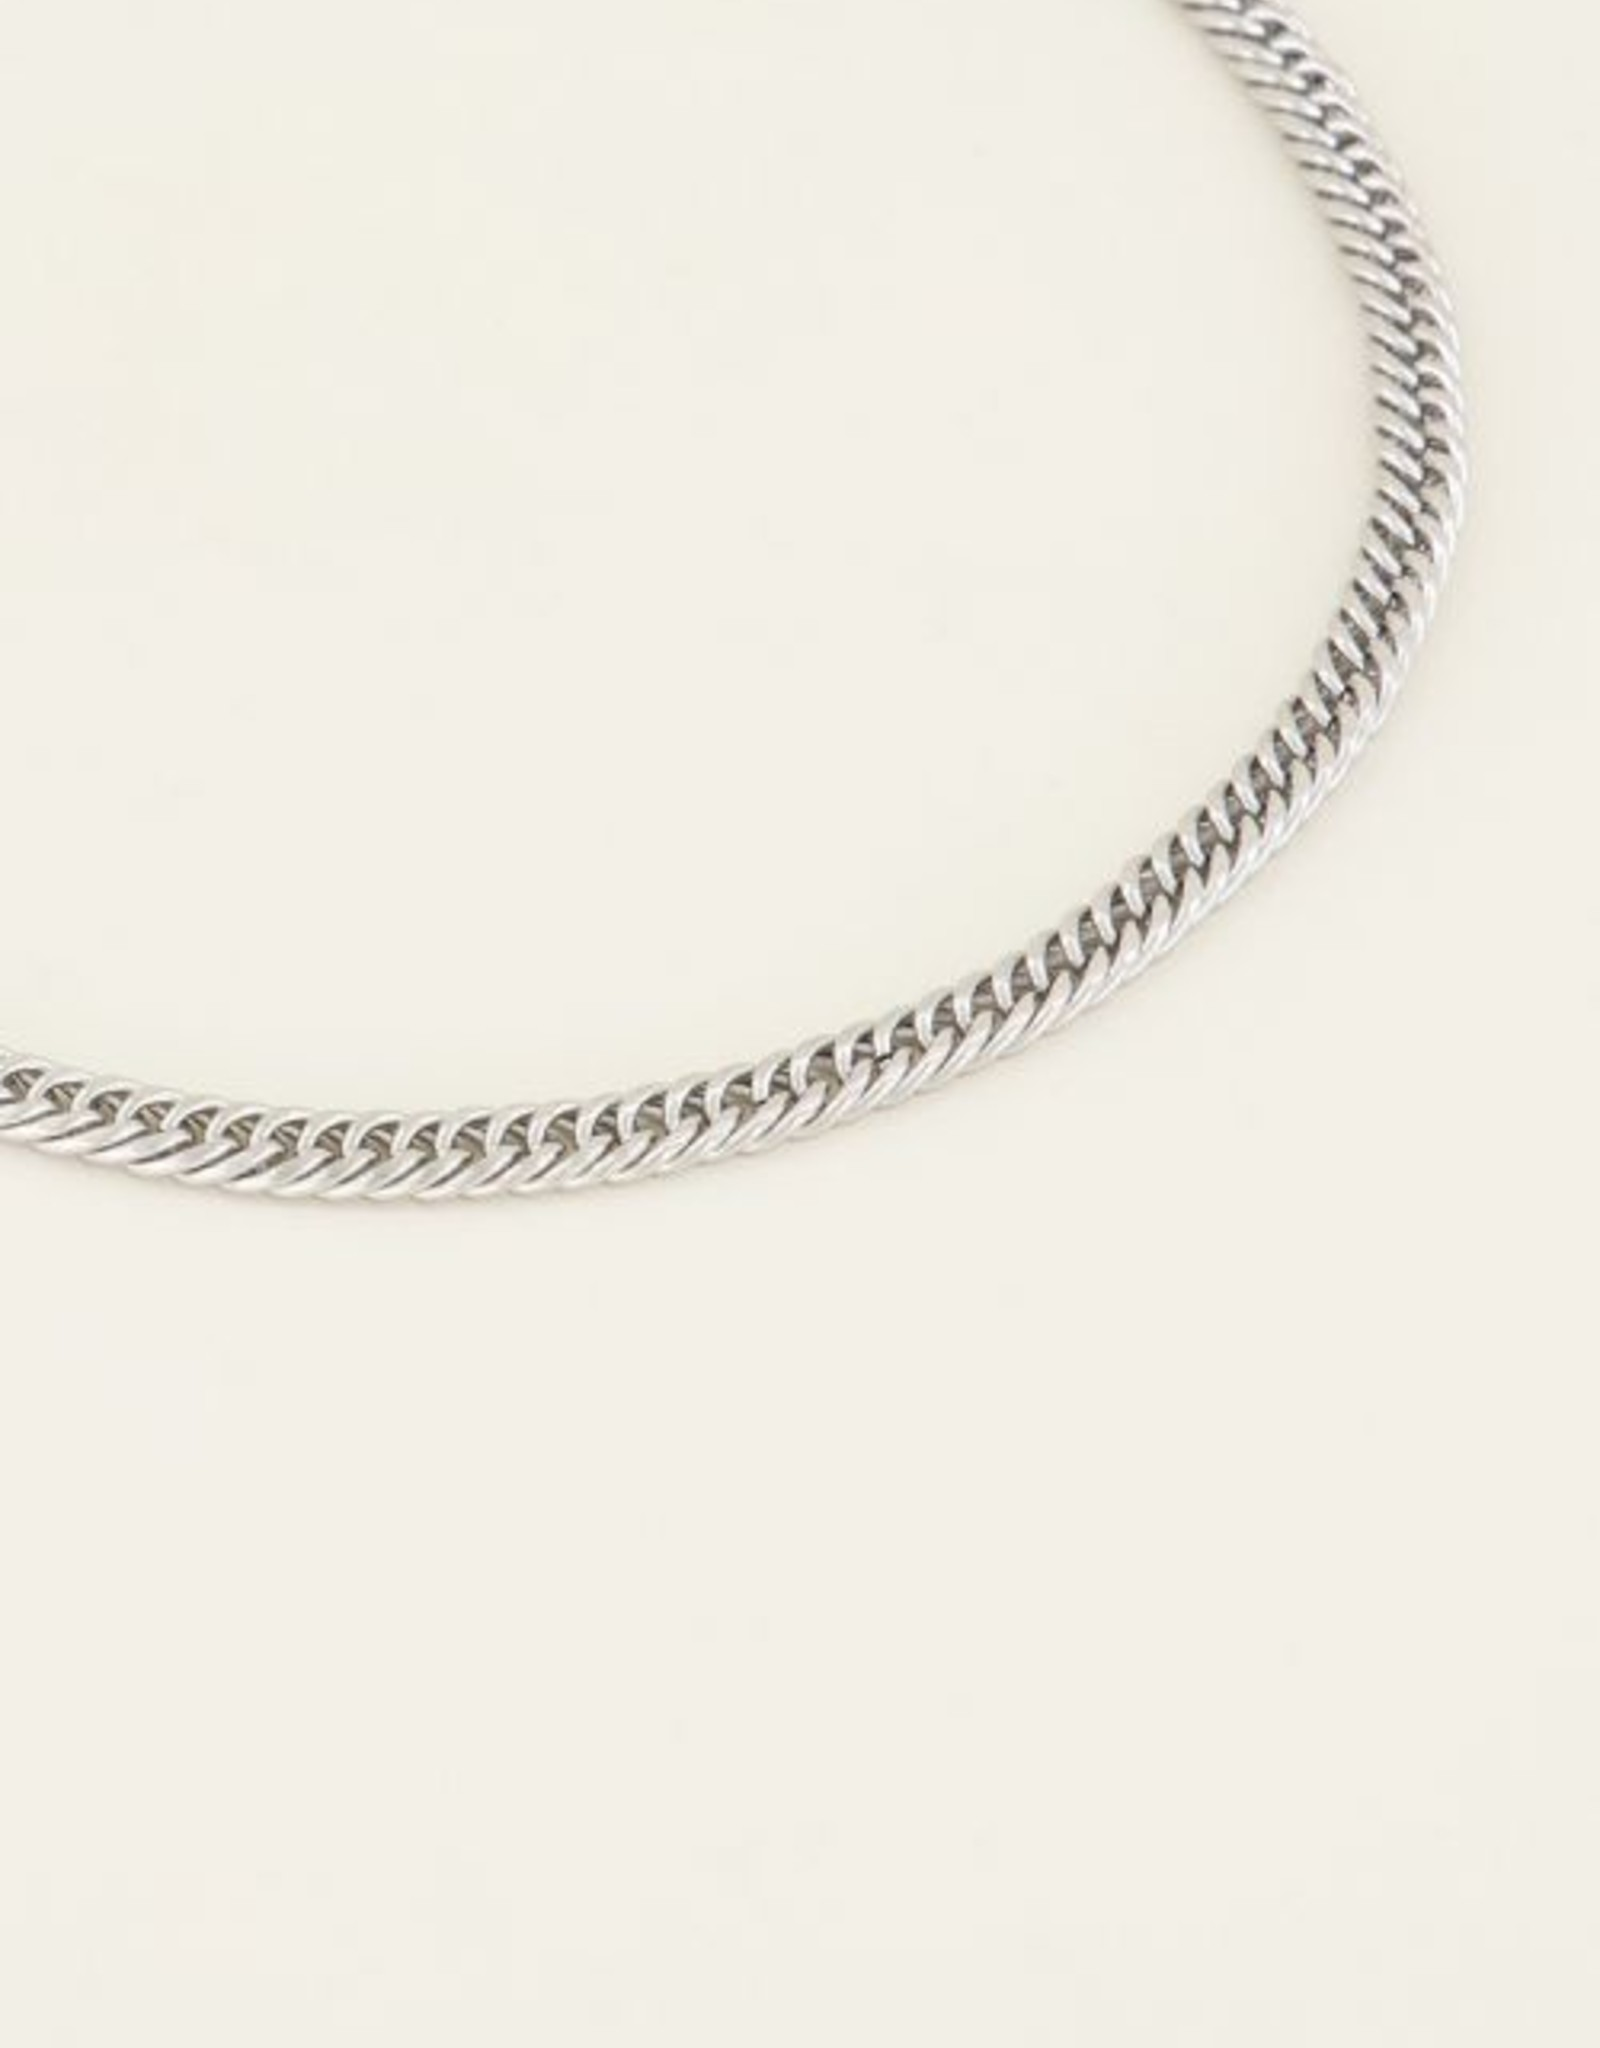 My Jewelry Ketting brede schakels-silver